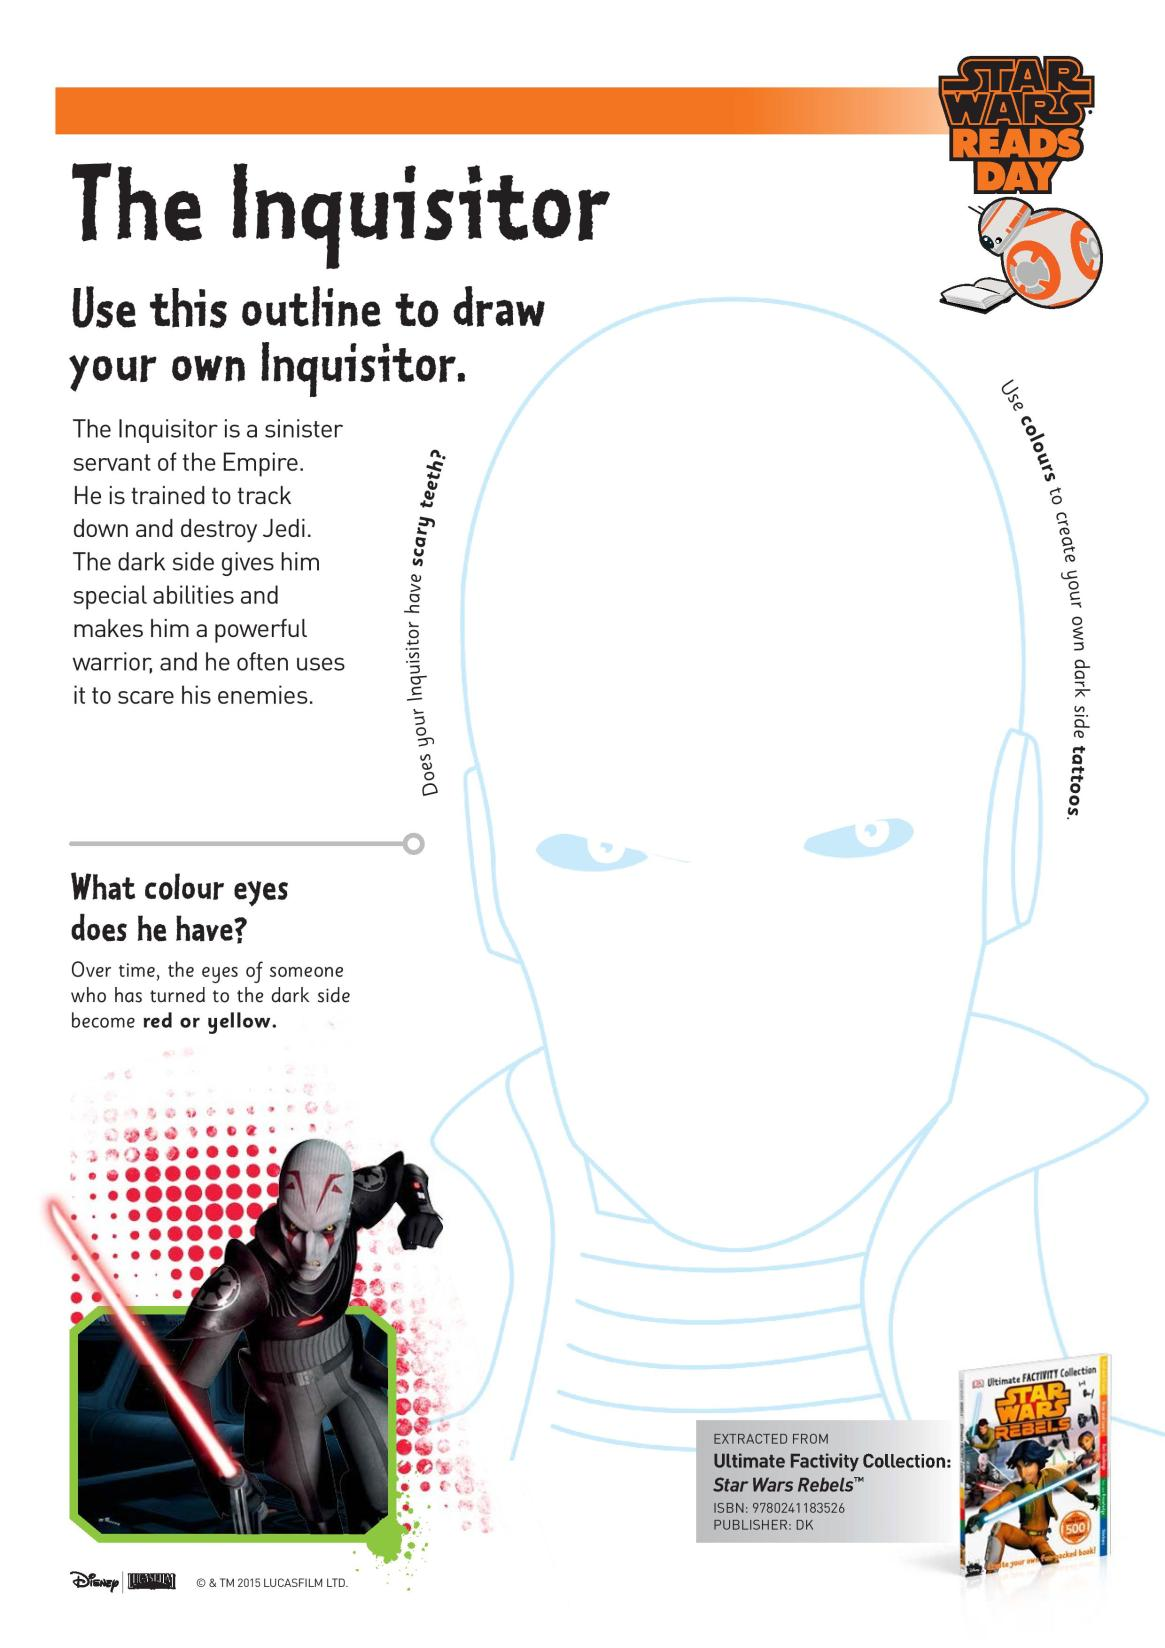 Draw your own Inquisitor Star Wars themed Printable drawing prompt for kids